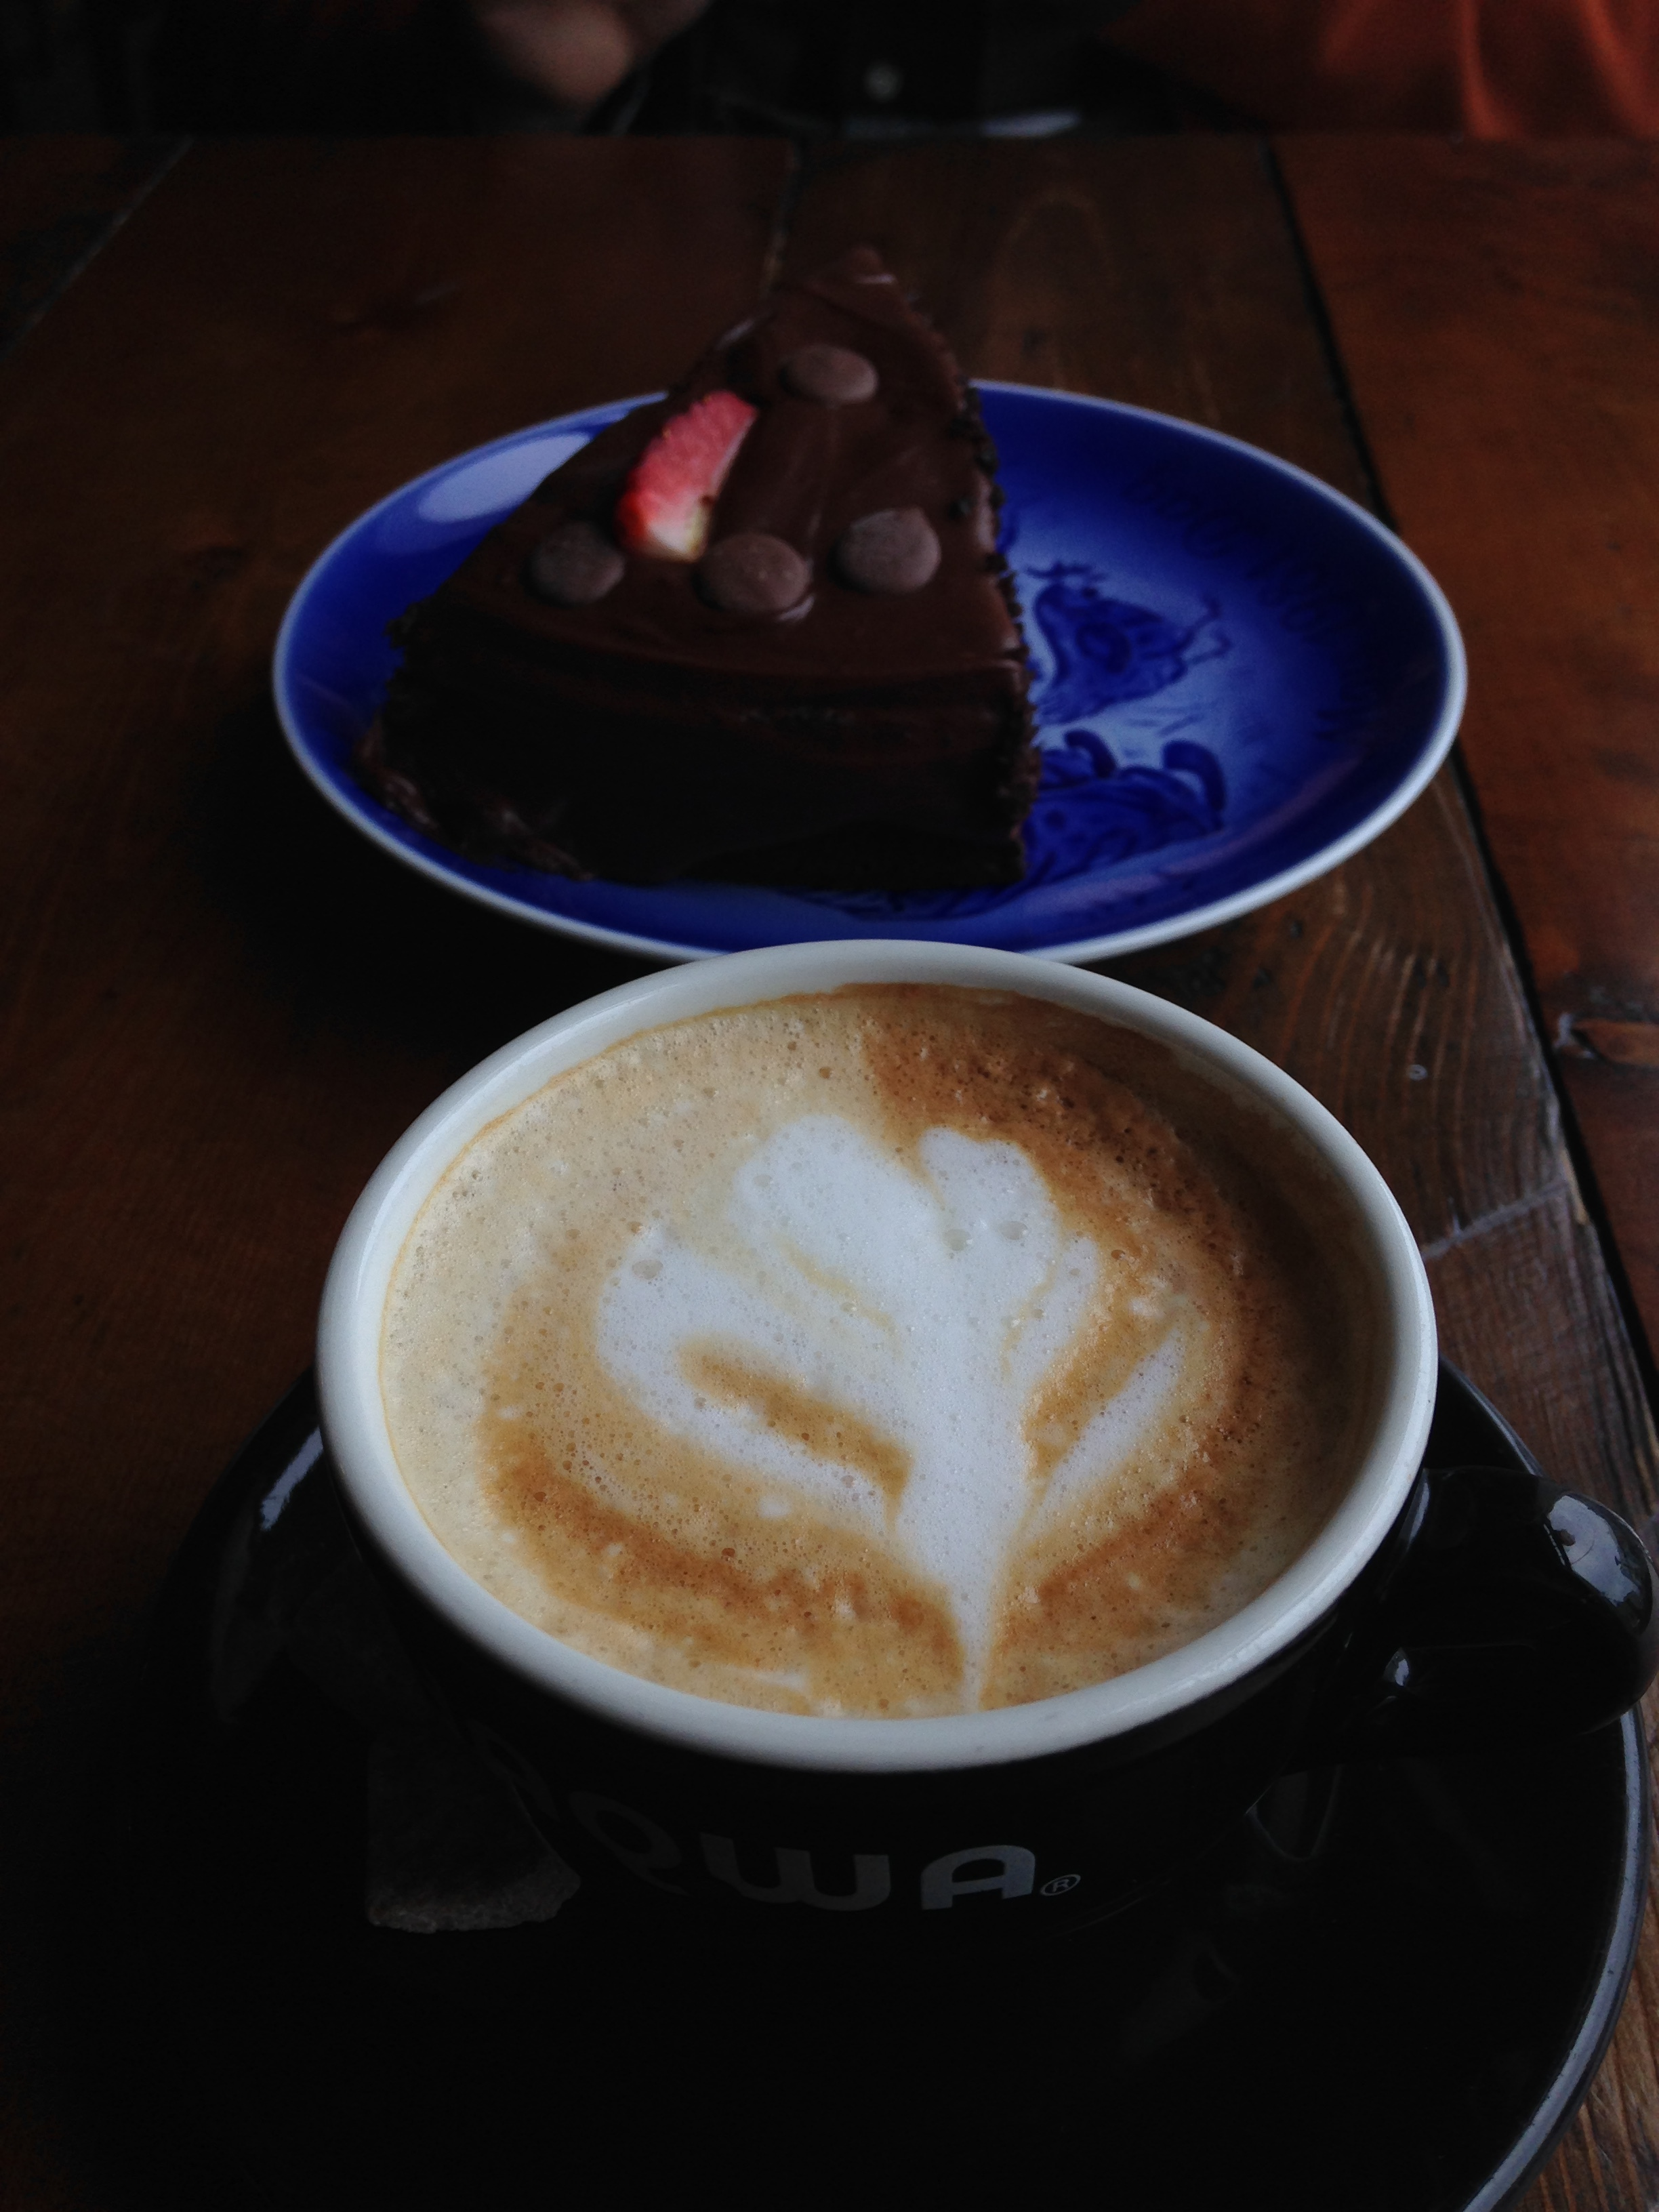 Coffee memories: a hot cup and chocolate cake on a cold, sleety day while visiting Reykjavik, Iceland before we were three.